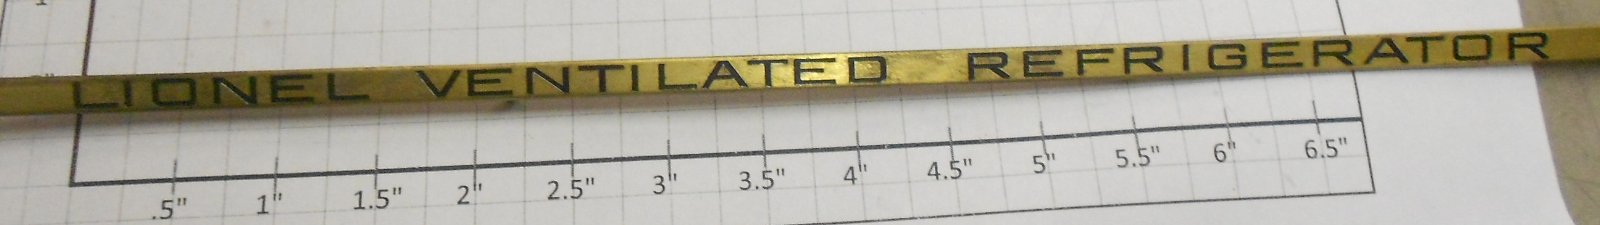 Lionel 214R-10B Brass Ventilated Refrigerator Nameplate Check the photos for a detailed look at this item.Condition: Part (N/ATrainz does not provide grading for parts.Standards for all toy train related accessory items apply to the visual appearance of the item and do not consider the operating functionality of the equipment.Condition and Grading Standards are subjective, at best, and are intended to act as a guide. )Operational Status: FunctionalThis part is in workable condition.Original Box: NoModel Number: 214R-10BVariation: ReproductionCategory 1: PartsCategory 2: Std ScaleAvailability: Ships in 3 Business Days!We are unable to provide parts lookup service or fitment assistance.The Trainz SKU for this item is P12255452. Track: 12255452 - Parts (7N4) - 001 - TrainzAuctionGroup00UNK - TDIDUNK